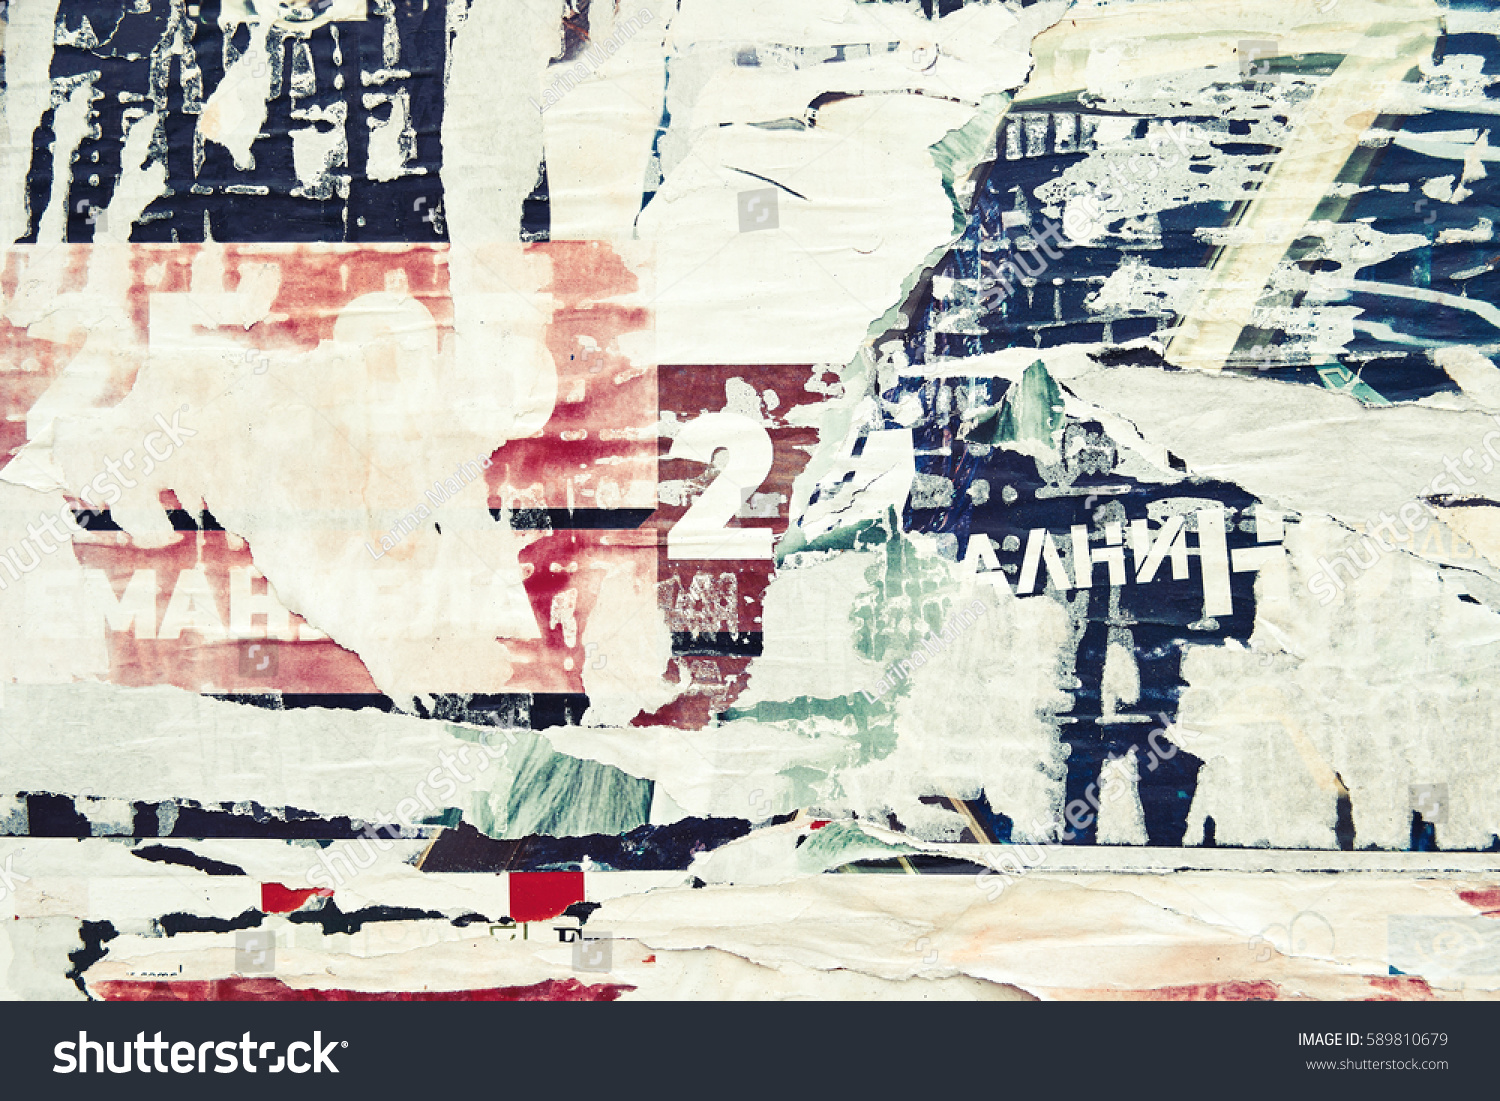 background backgrounds abstract advertisements - photo #35